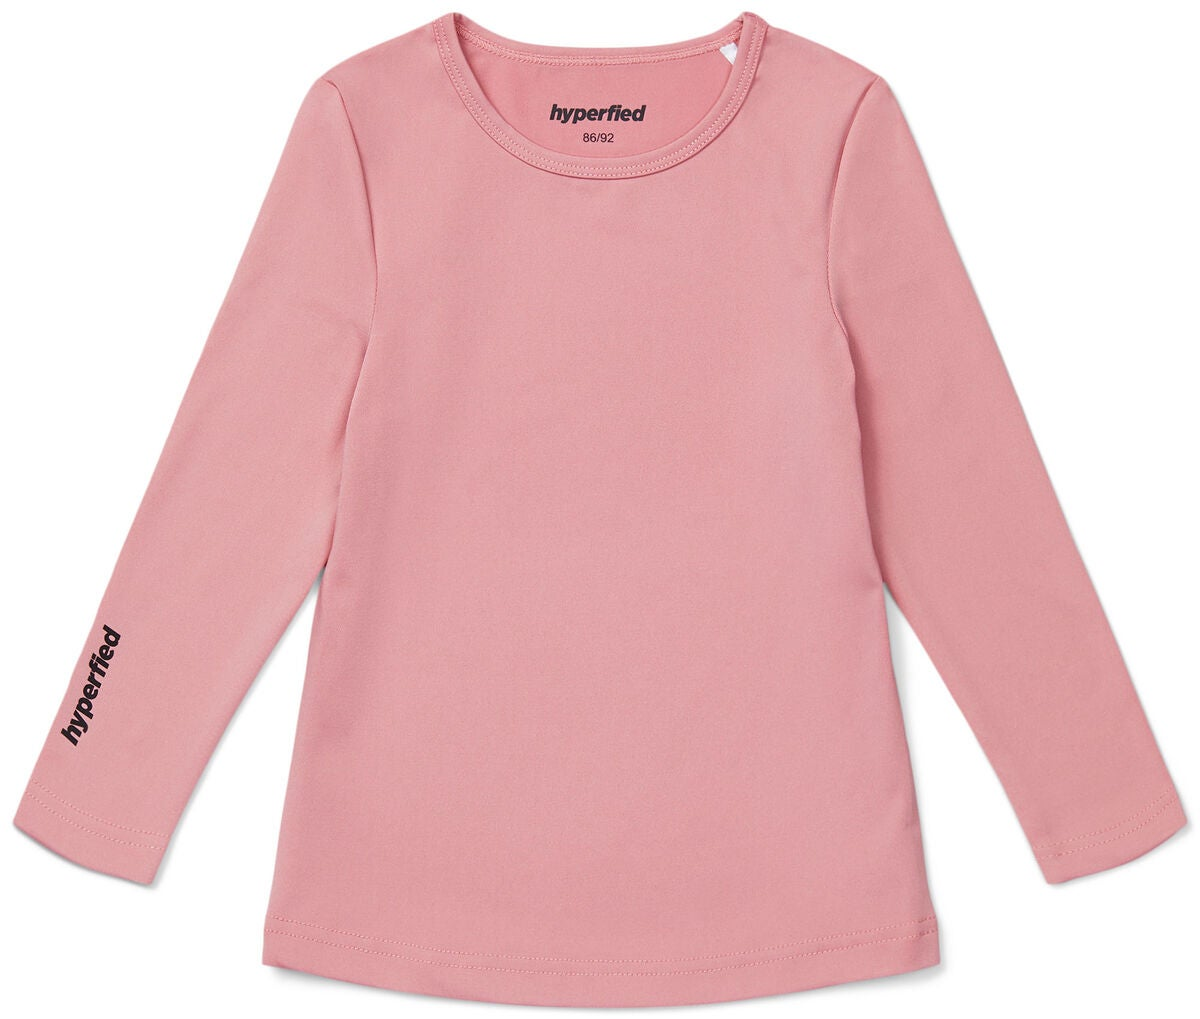 Hyperfied Long Sleeve Logo Top, Blush